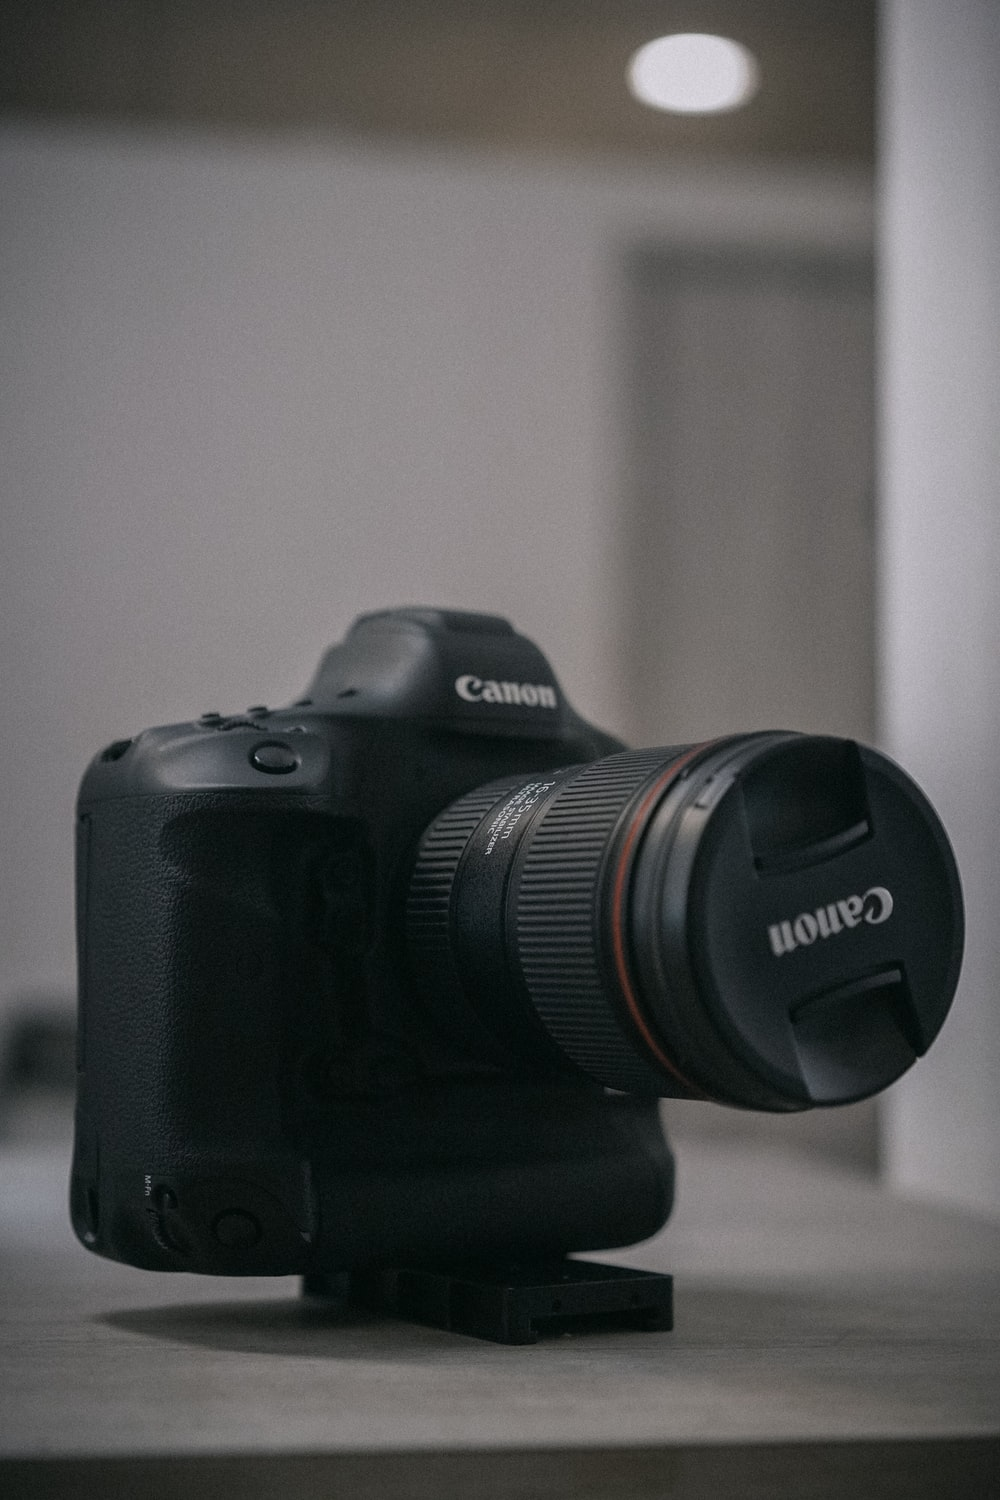 black Canon DSLR camera on brown surface